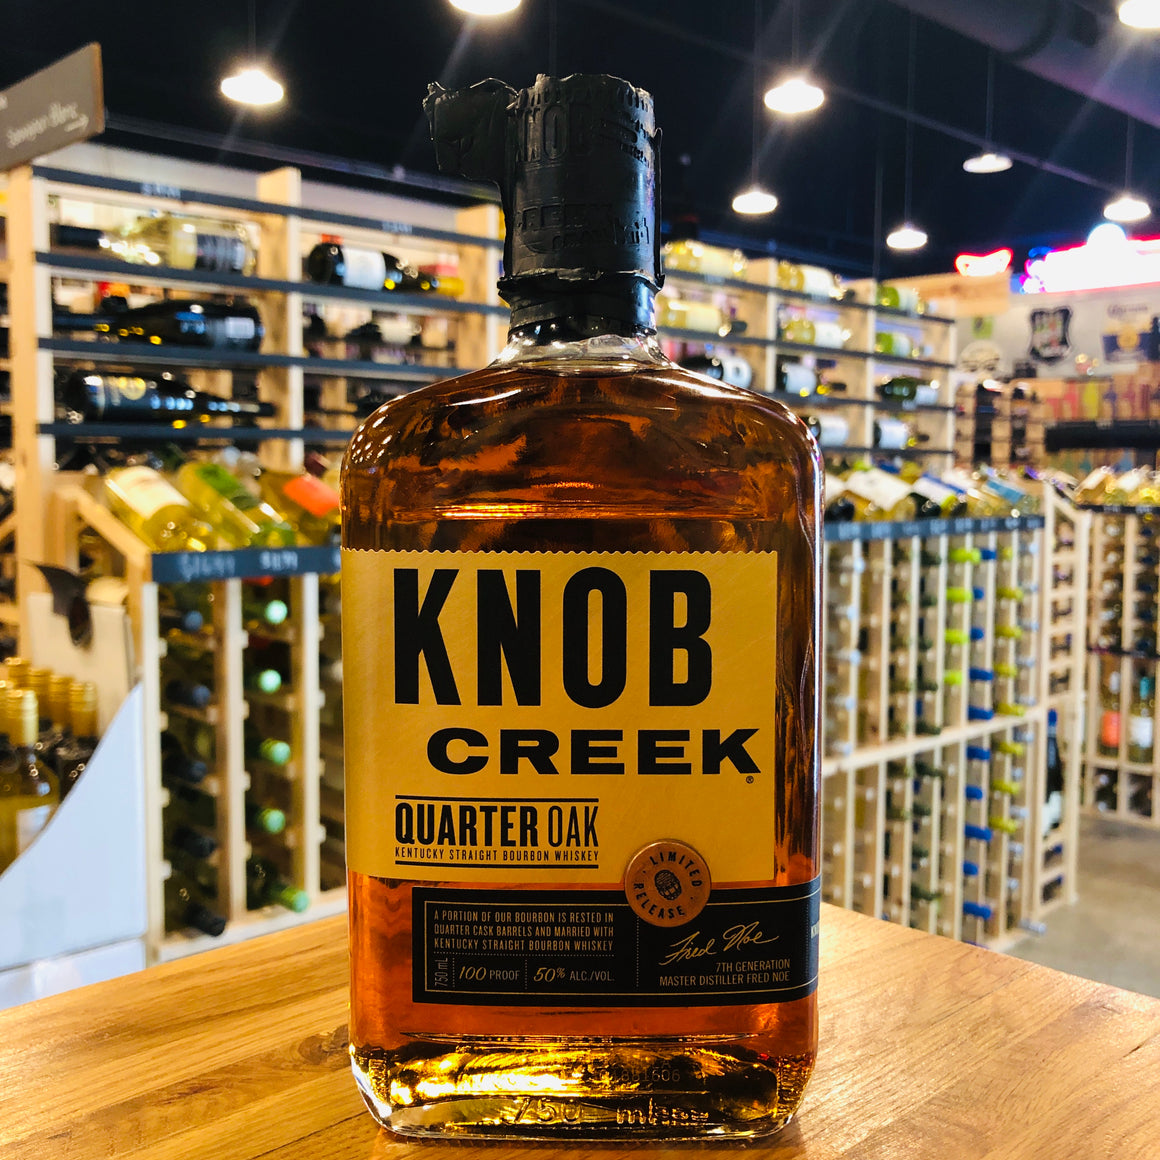 KNOB CREEK BOURBON QUARTER OAK BOURBON 100 PROOF 750ML